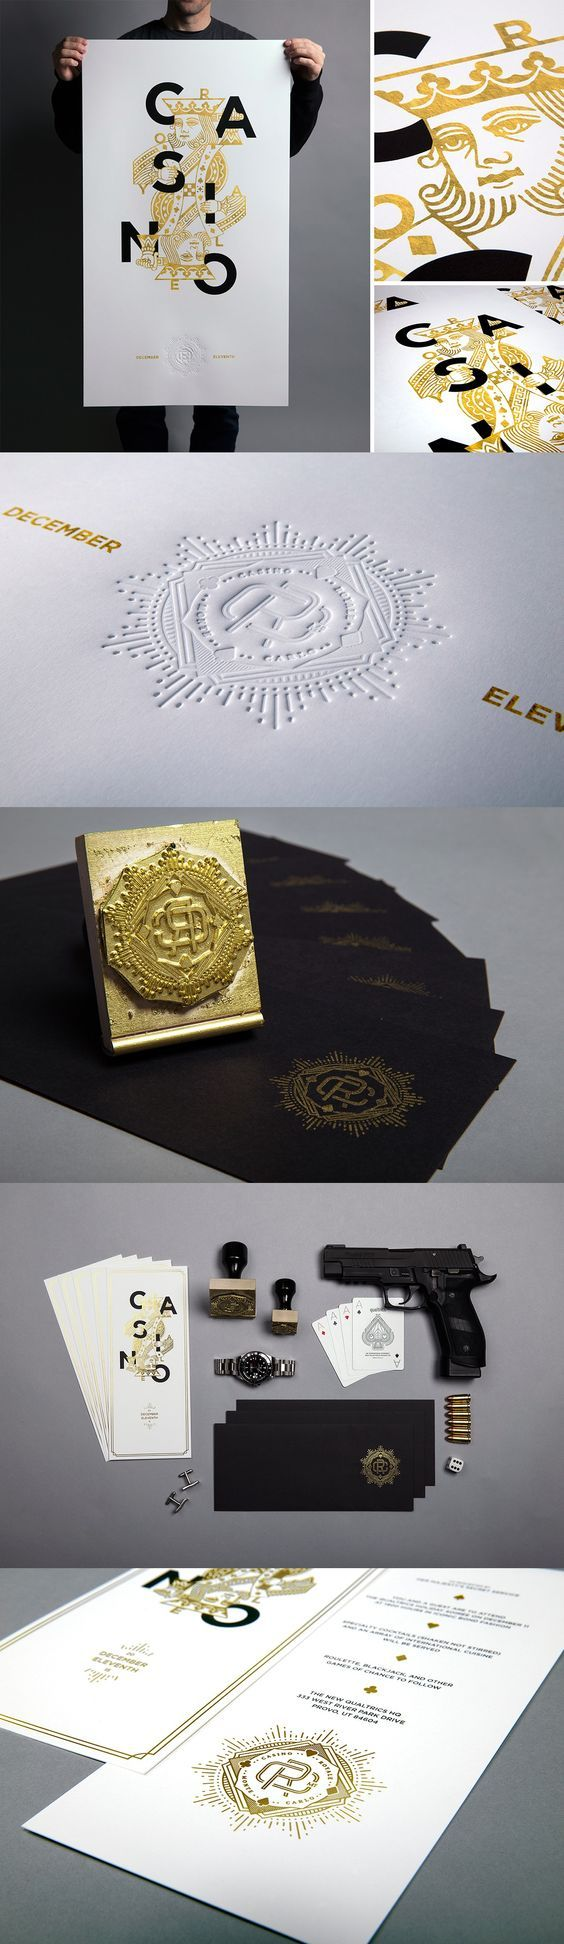 Qualtrics Casino Royale Branding by Stewart West, John Johnson, Garrett Wessman & Jason Johnson